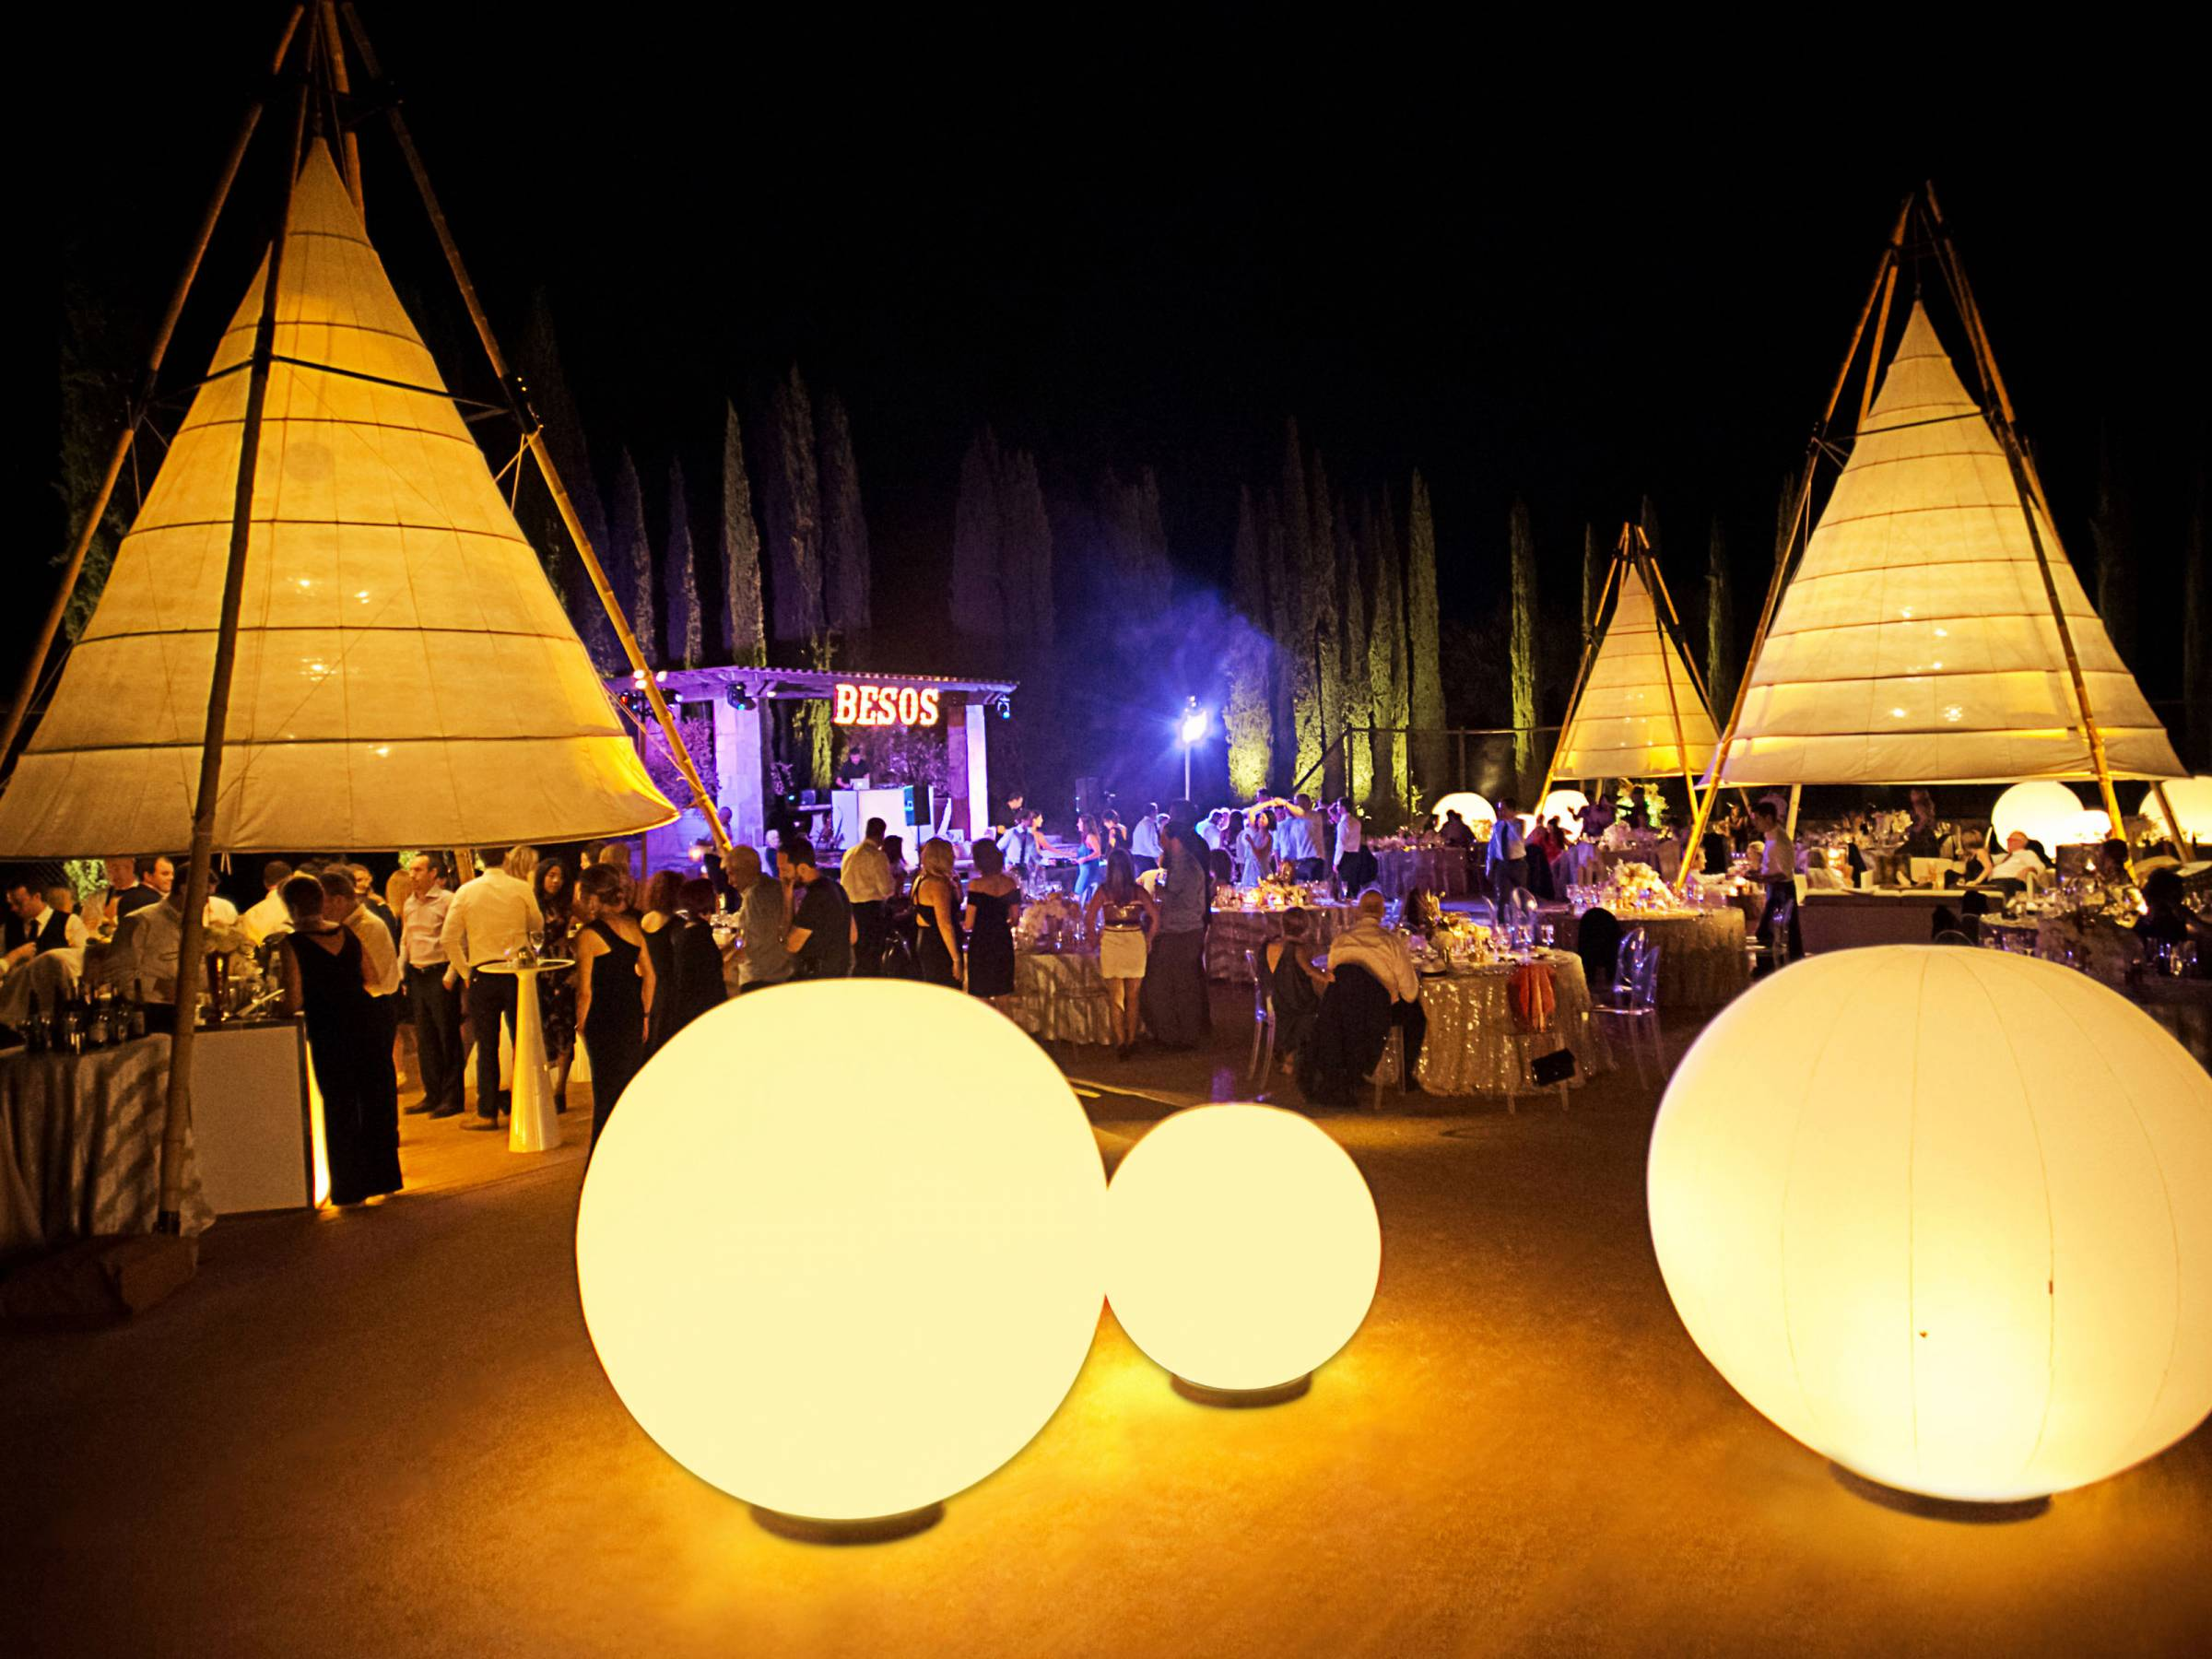 Glowing giant tepees and large glowing spheres